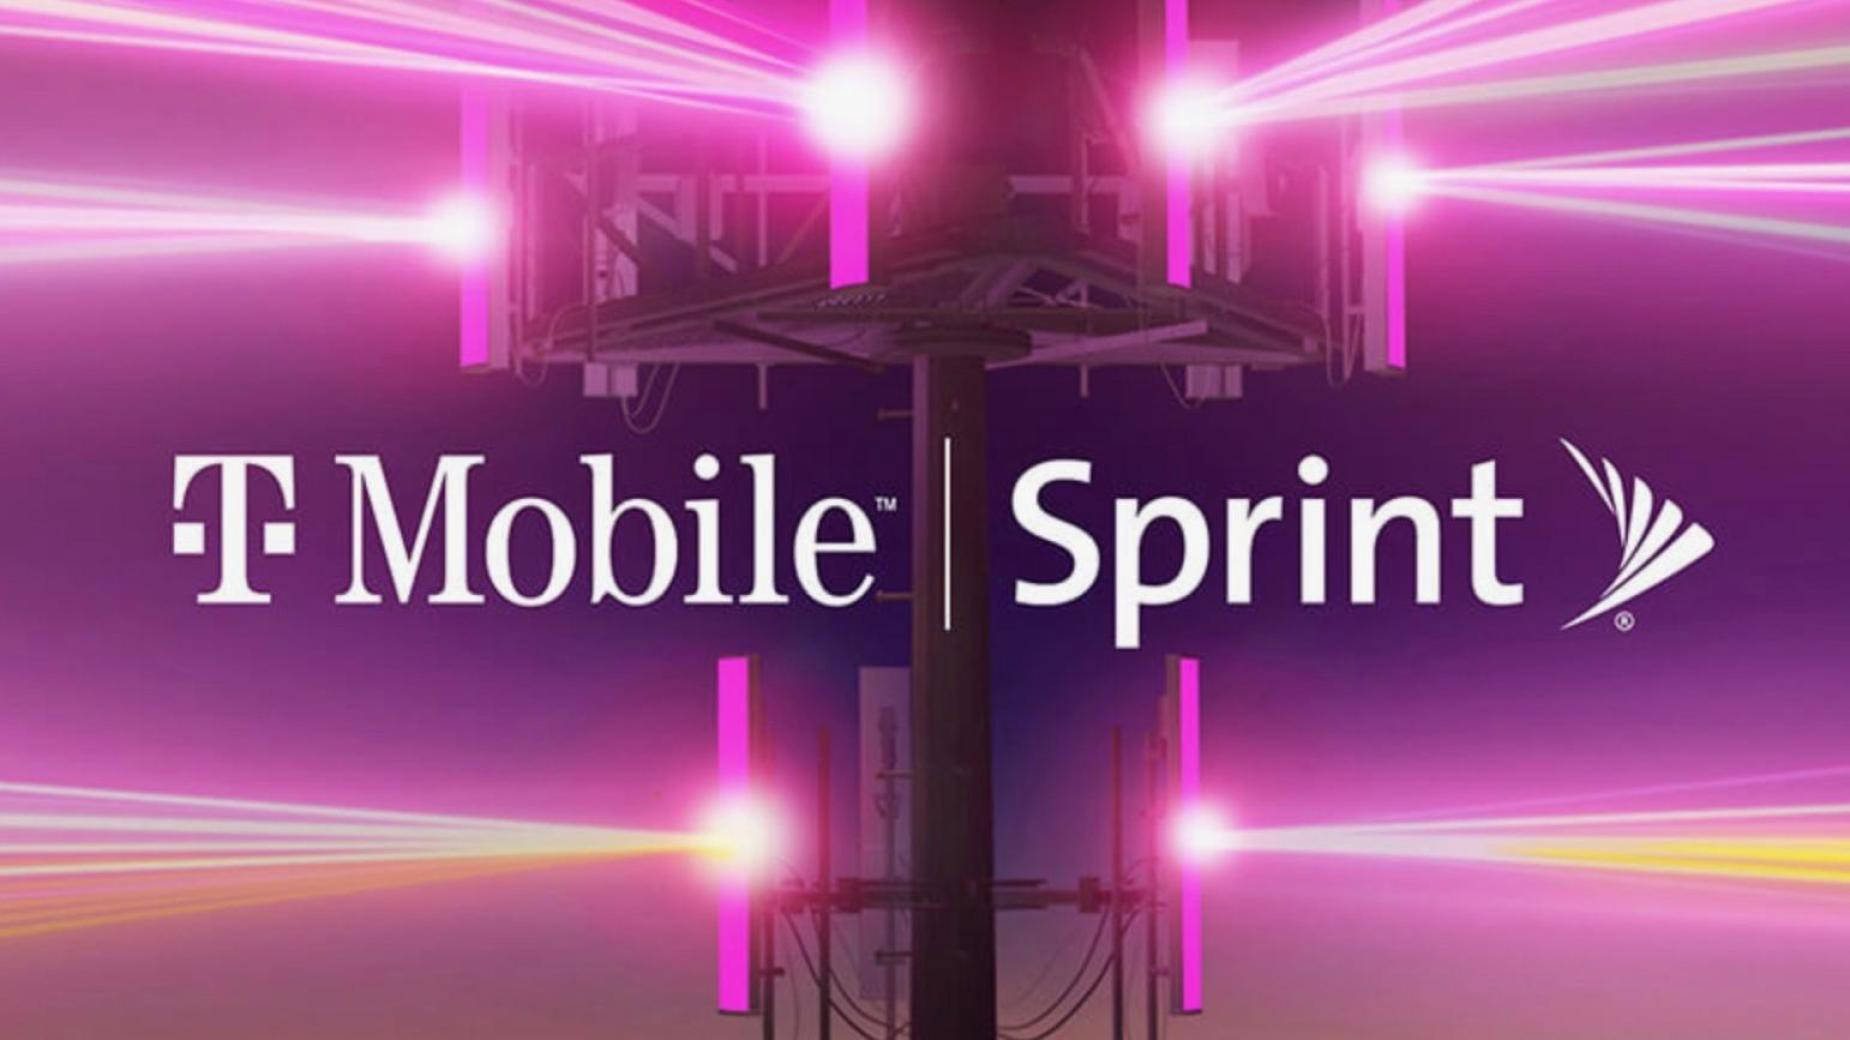 What The Sprint T Mobile Merger Means For Sprint Customers By